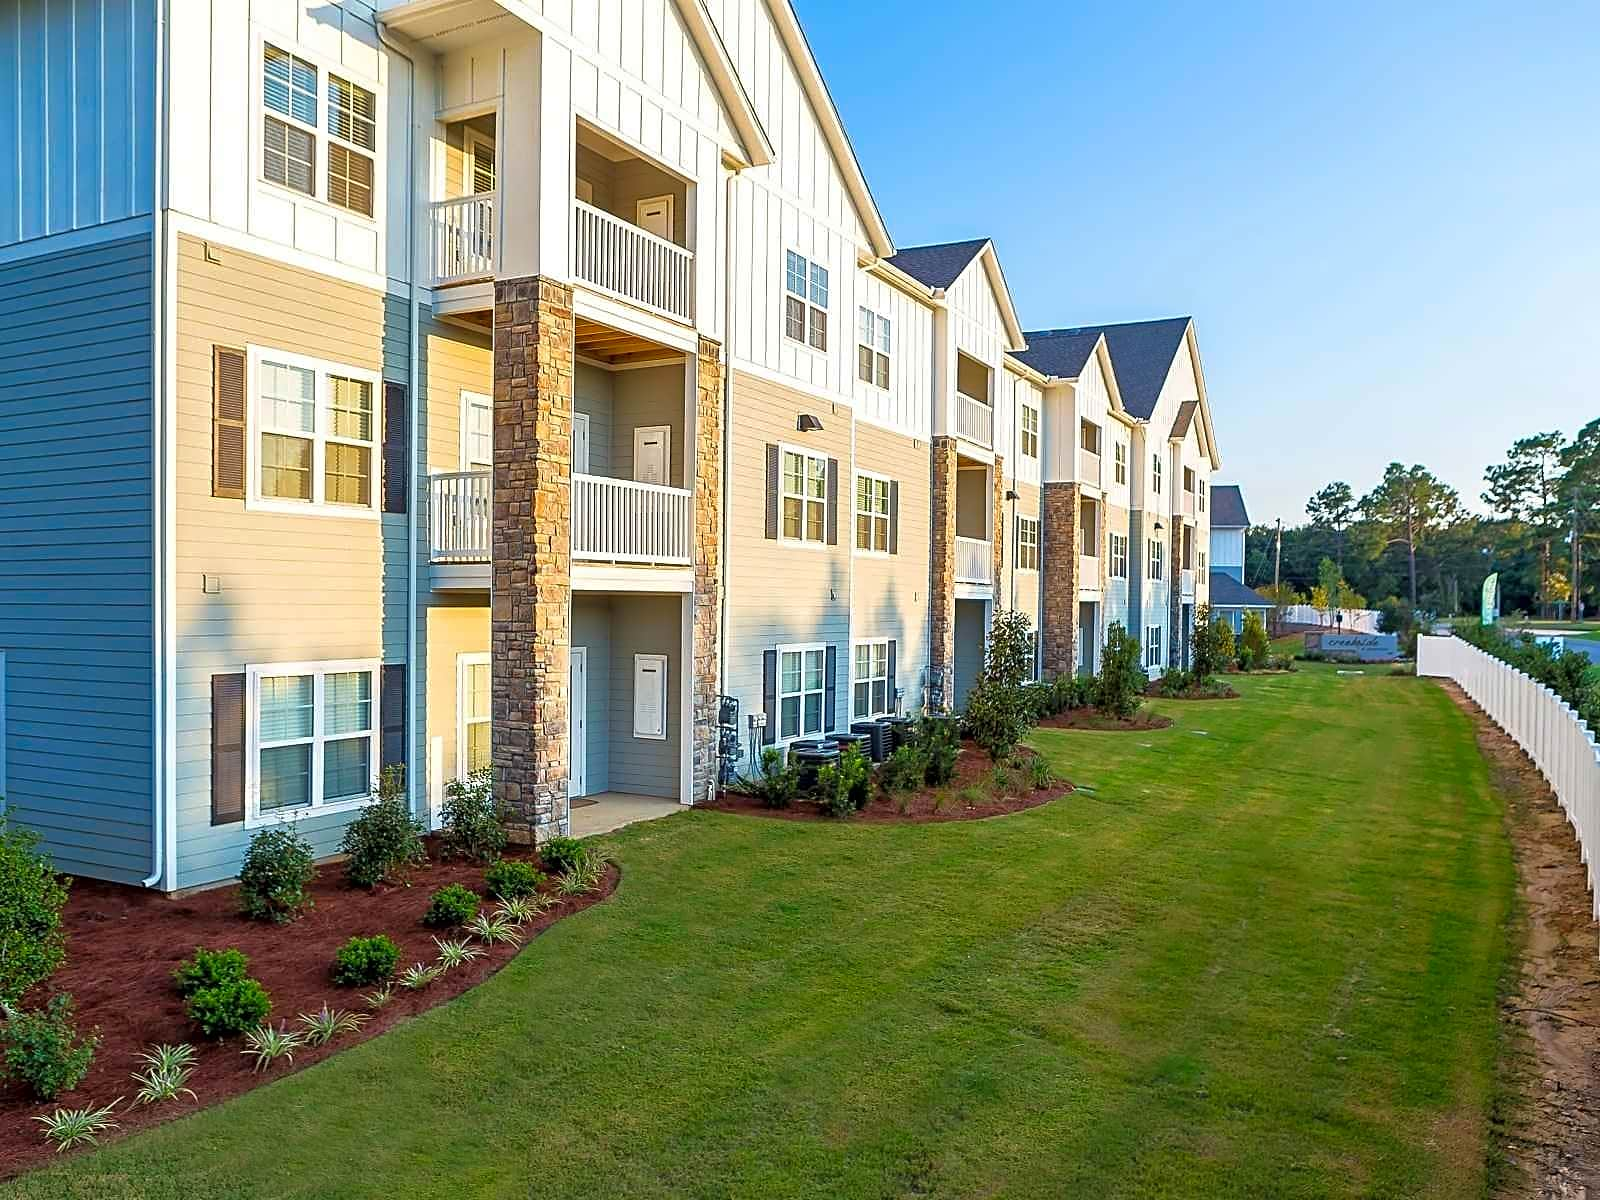 Apartments Near UofSC Creekside at Greenlawn for University of South Carolina Students in Columbia, SC